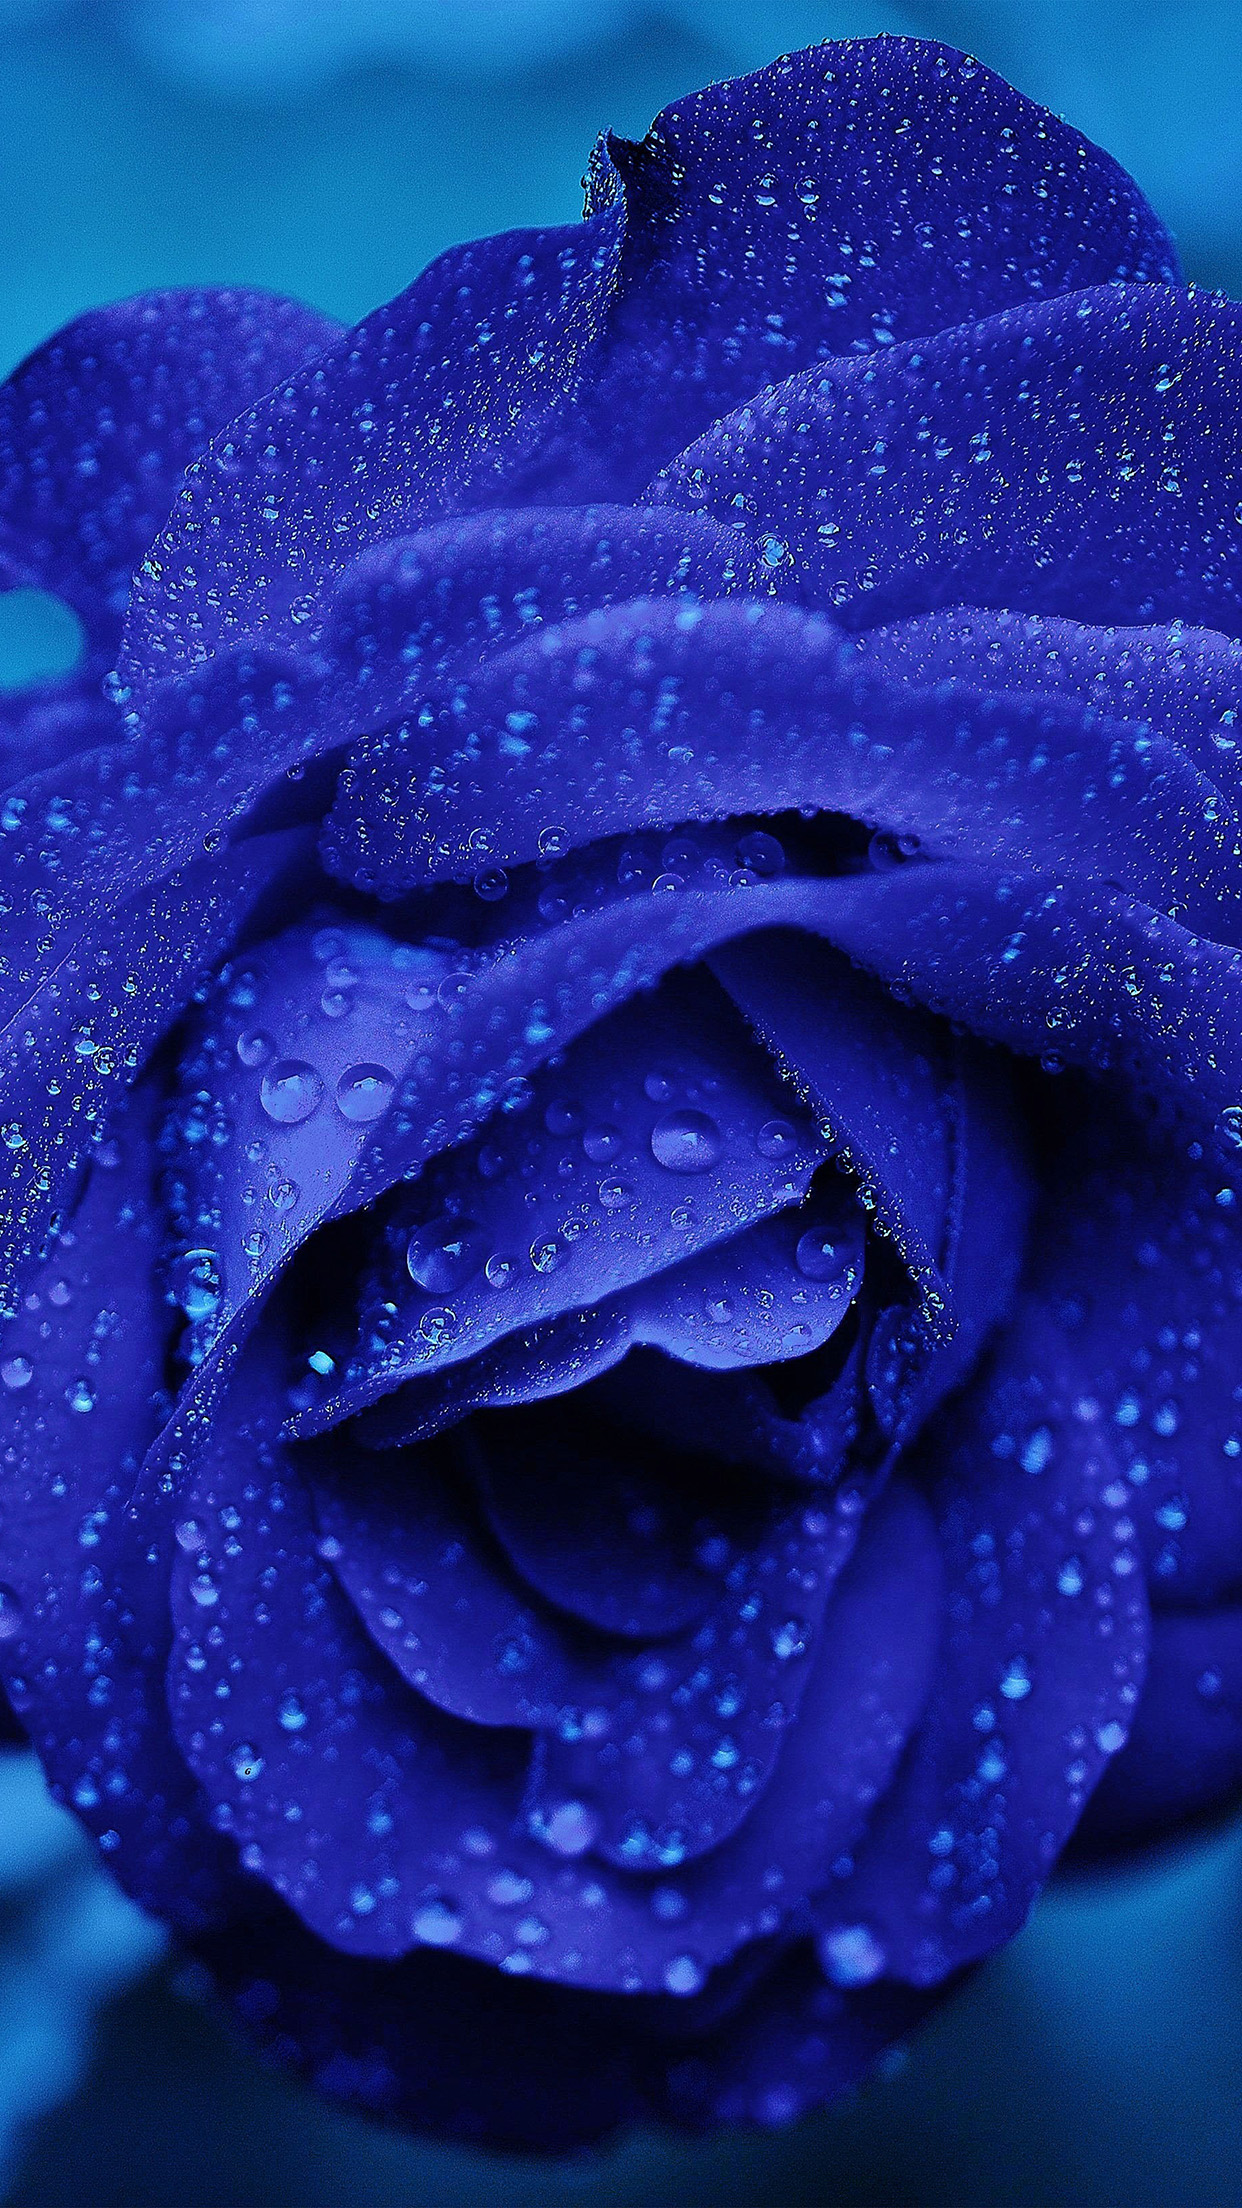 iphonepapers | iphone 8 wallpaper | nd81-rose-flower-blue-rain